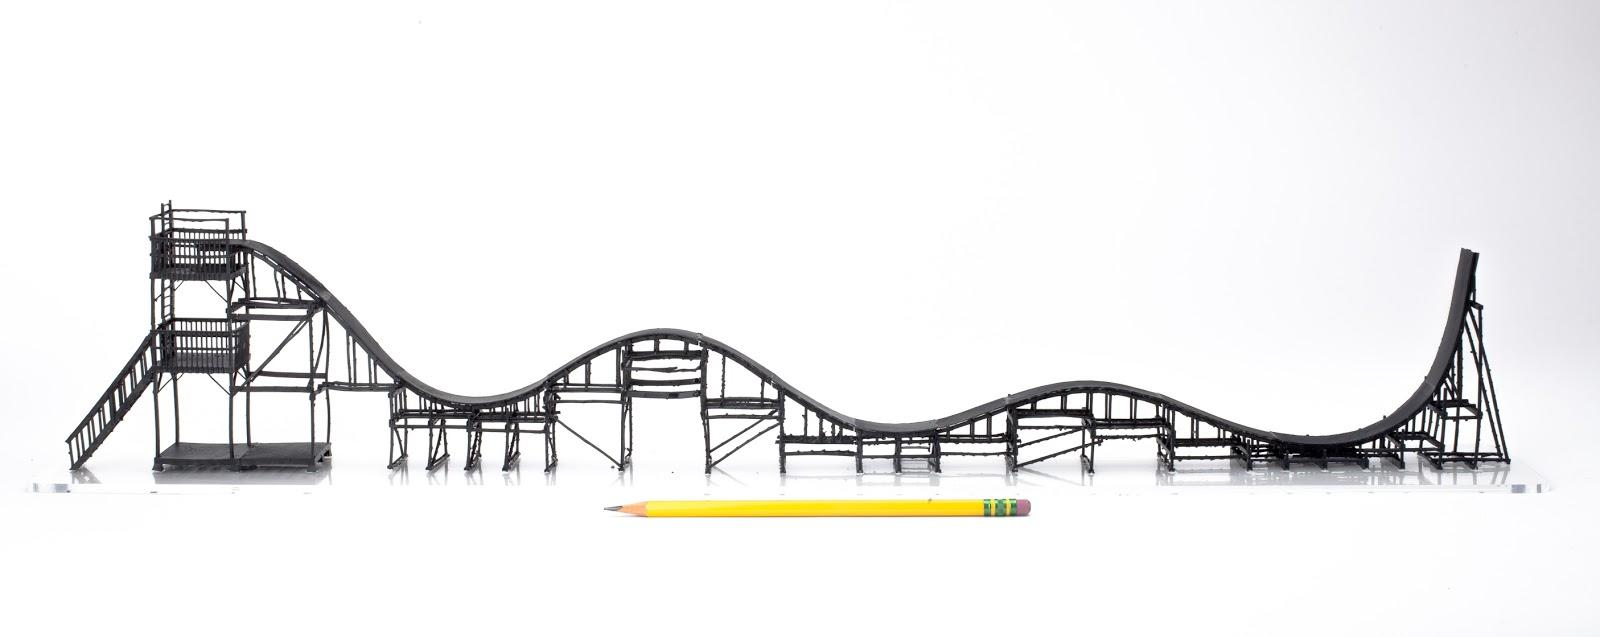 Ben Katz 3D Prints a 1:60 Scale Model Roller Coaster - Now Working the Full Scale Version